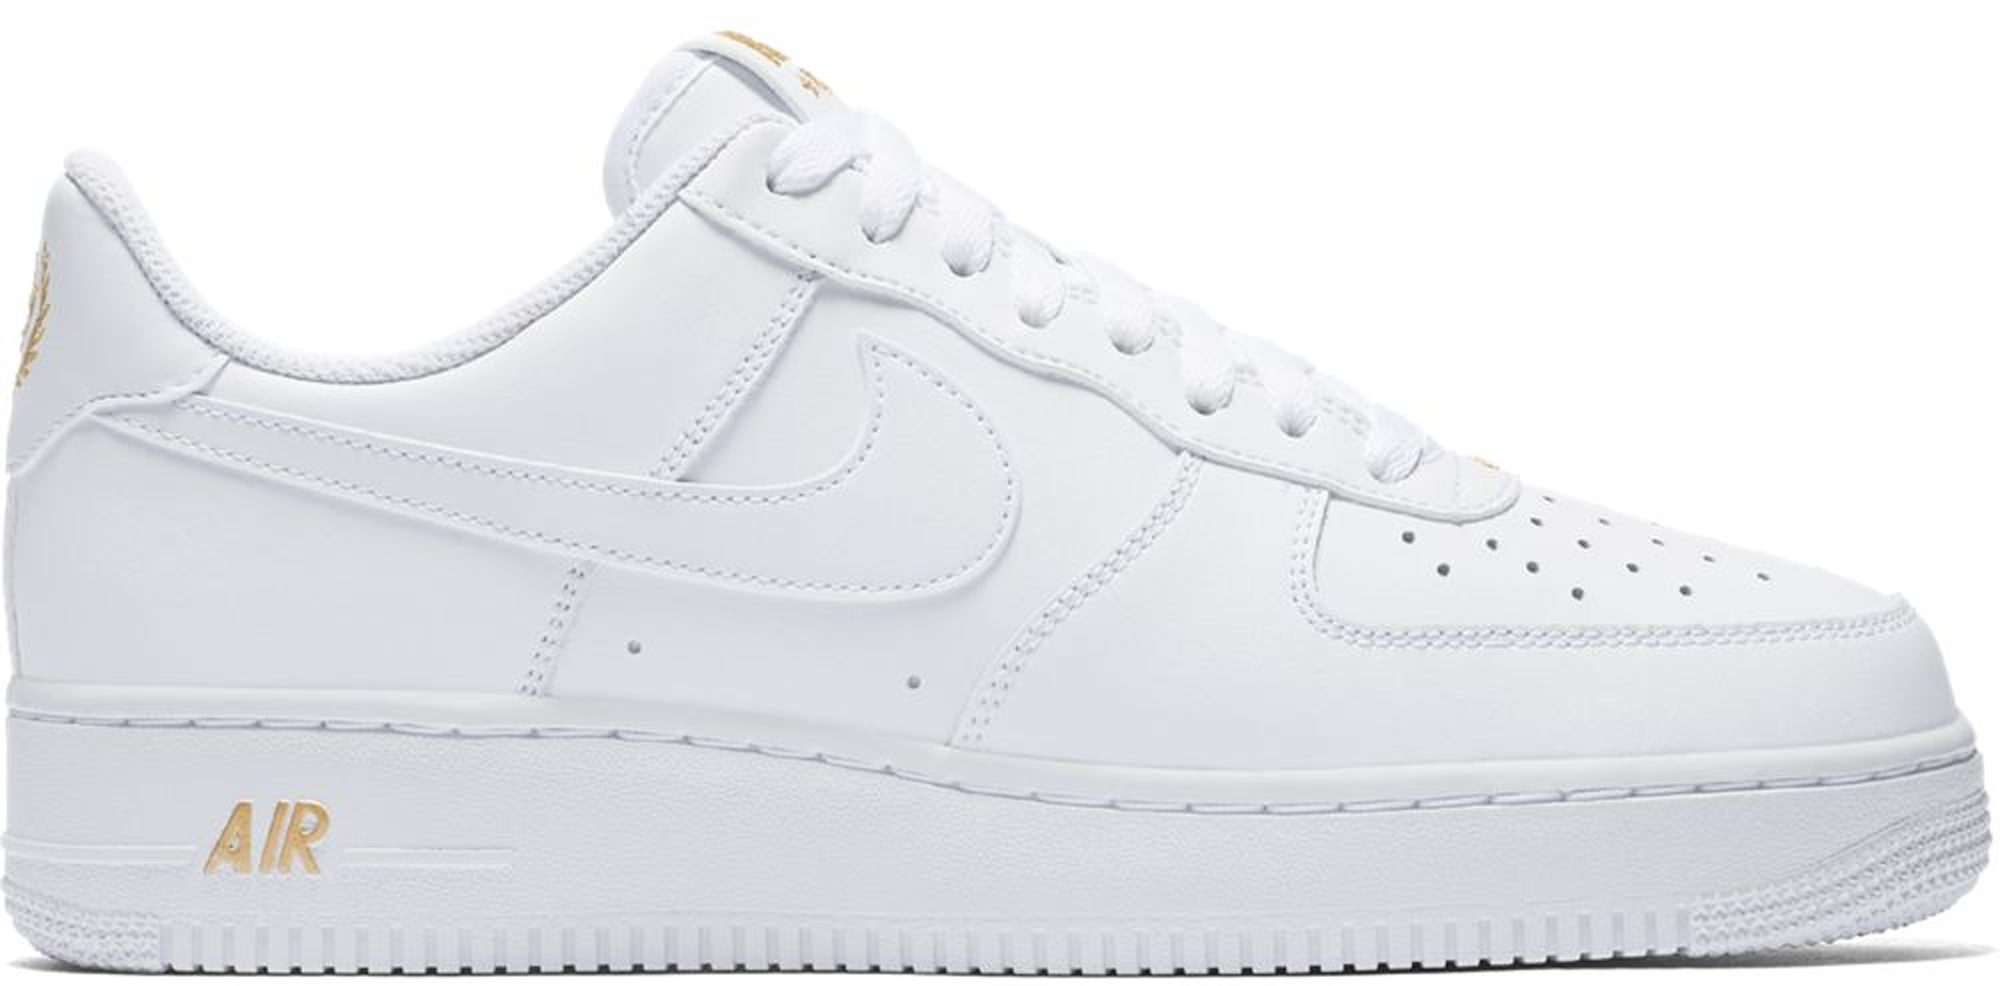 Nike Air Force 1 Low Crest Logo White